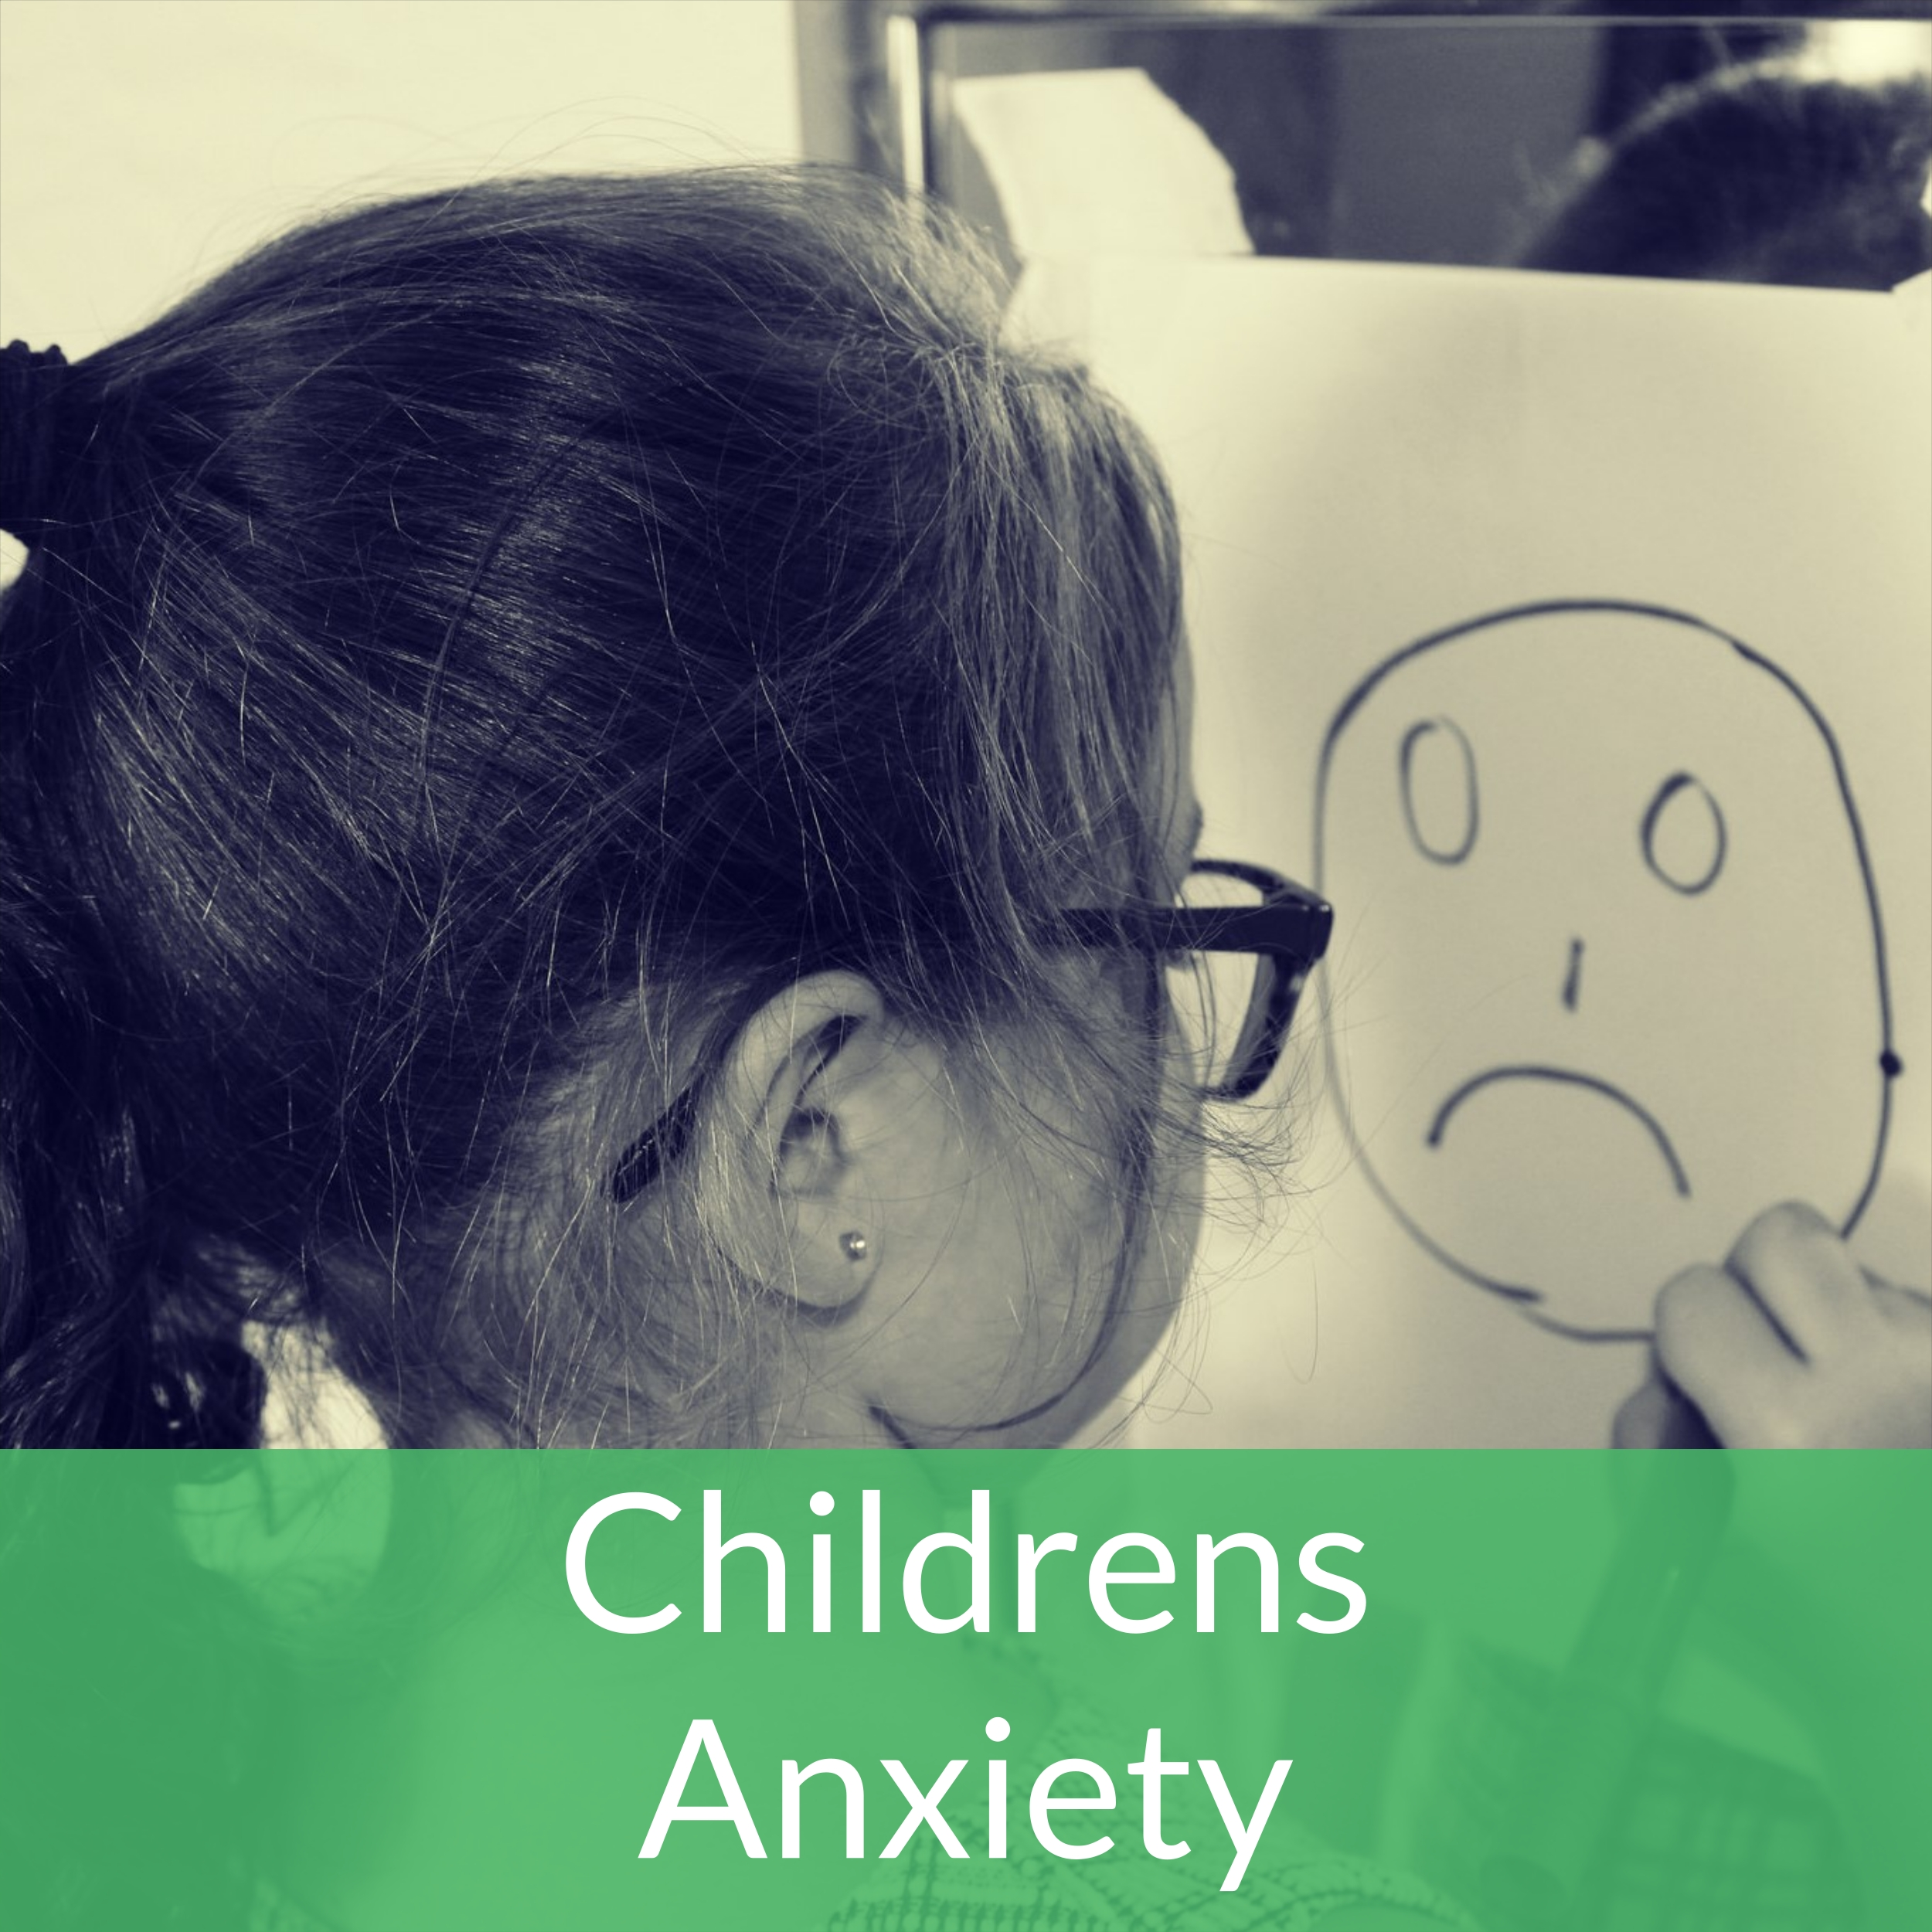 banner-childrens-anxiety1